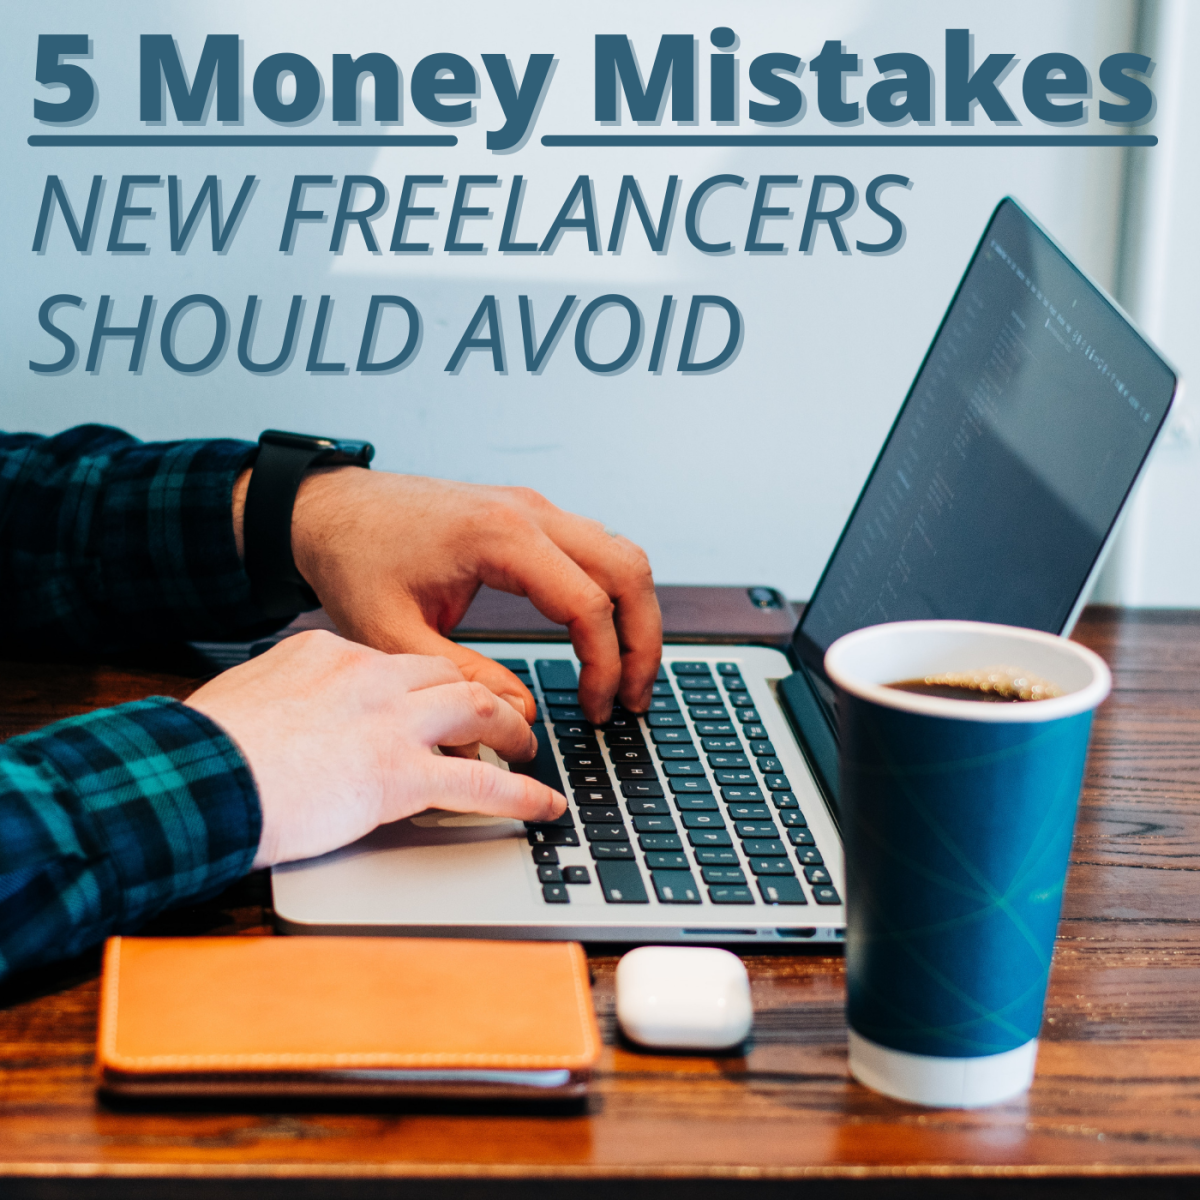 It's easy to make financial mistakes in a non-traditional employment environment. Here are five big ones to avoid if you can.